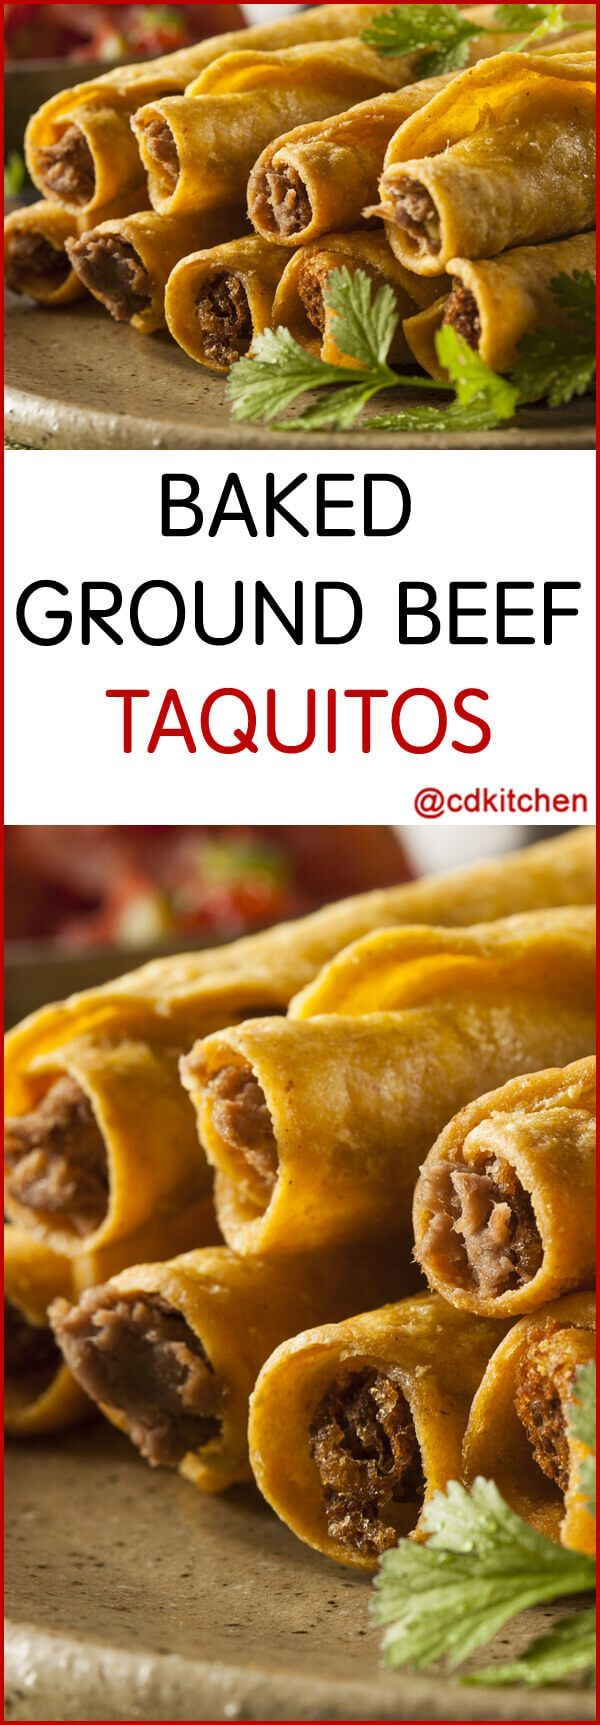 Baked Ground Beef Taquitos Recipe | CDKitchen.com